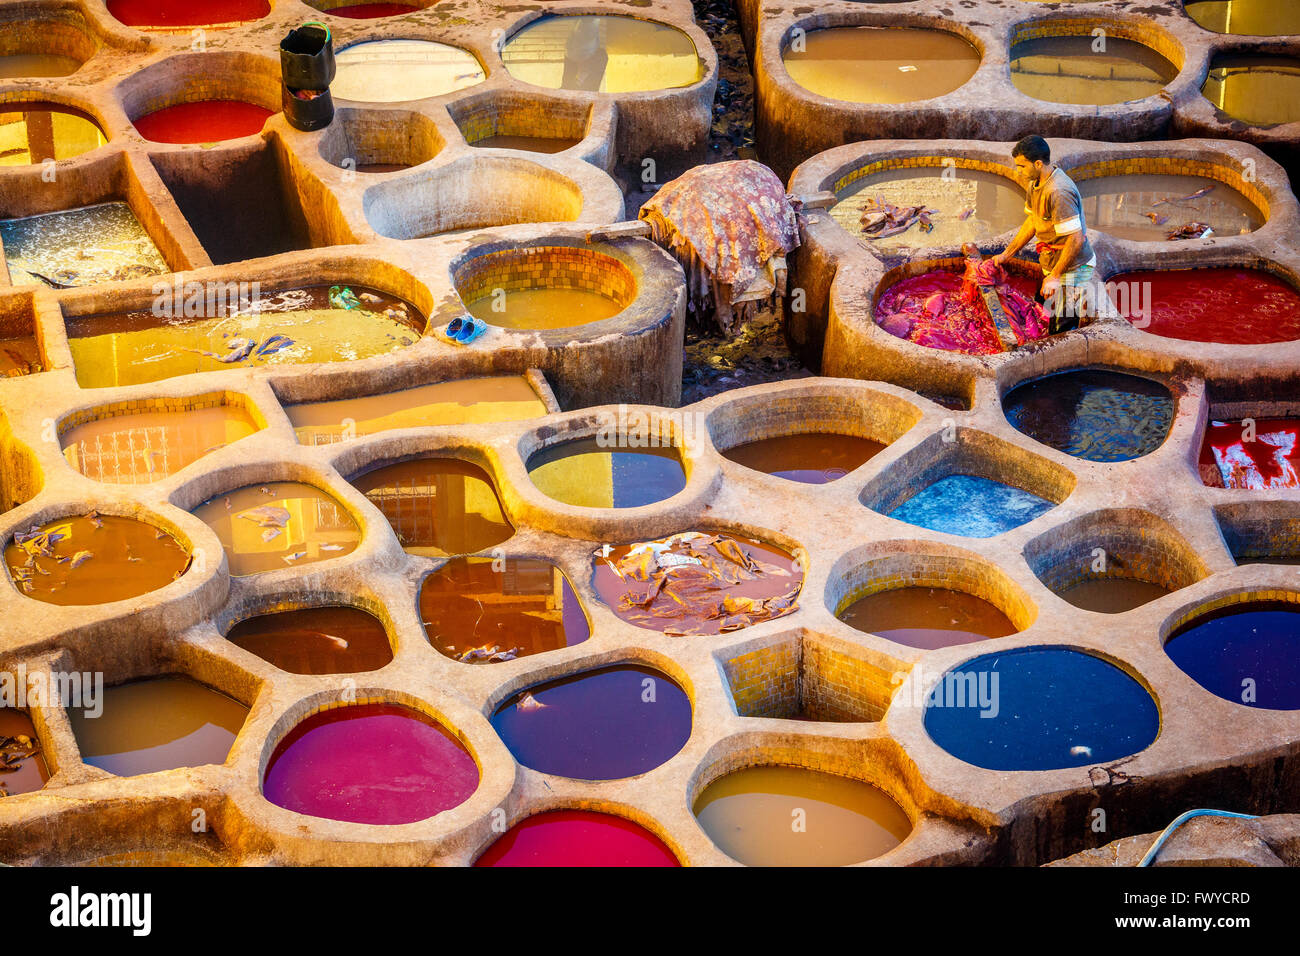 Leather Tannery in Fez Morocco - Stock Image